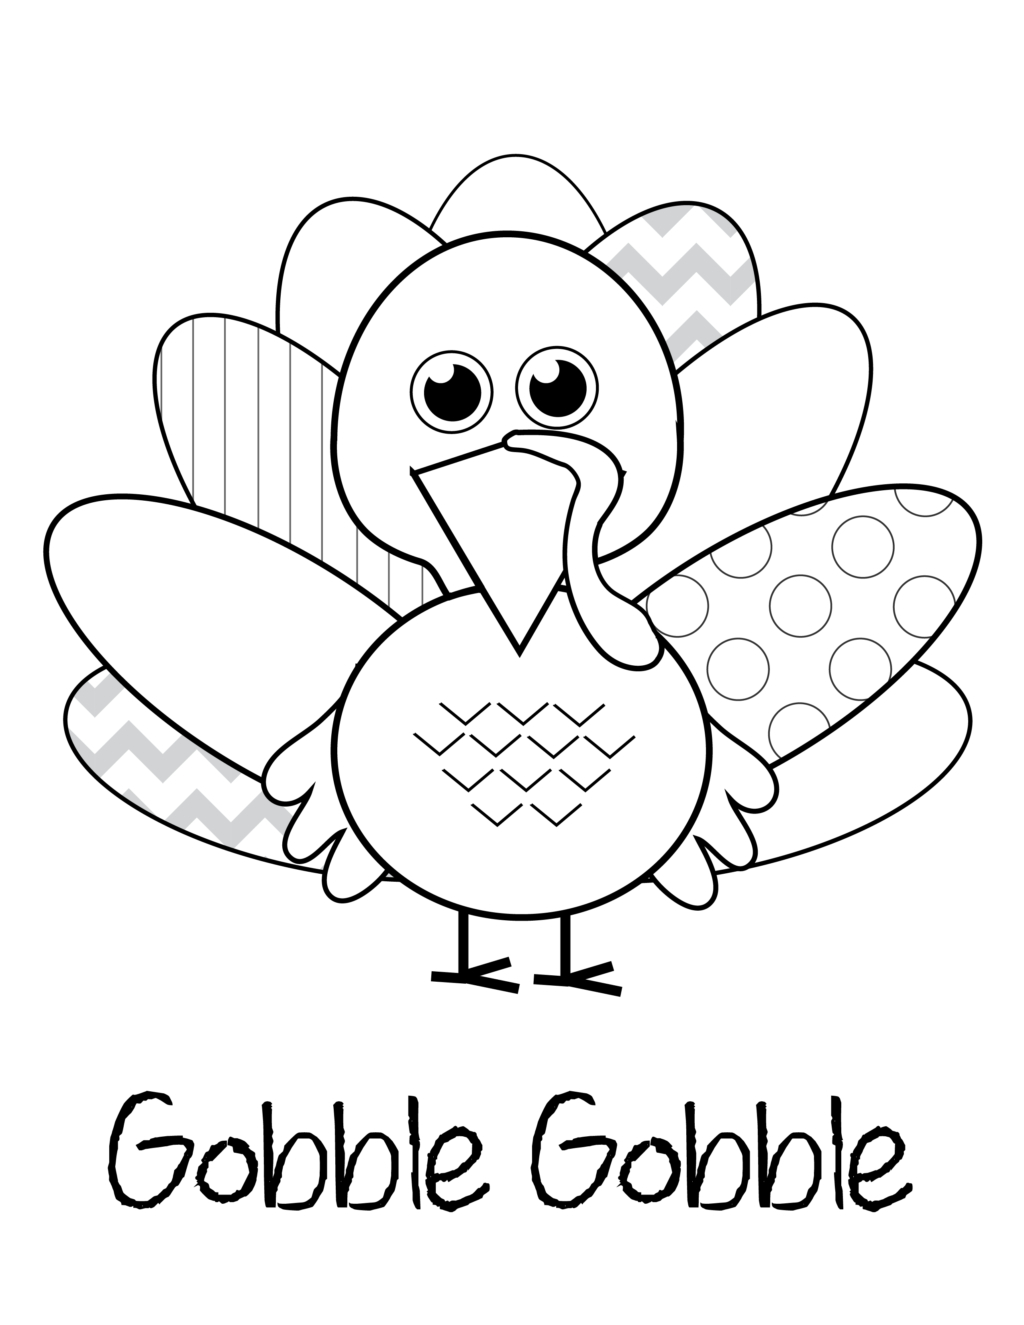 Coloring Book World ~ Turkey Coloring Pages For Preschoolers Kids - Free Printable Turkey Coloring Pages